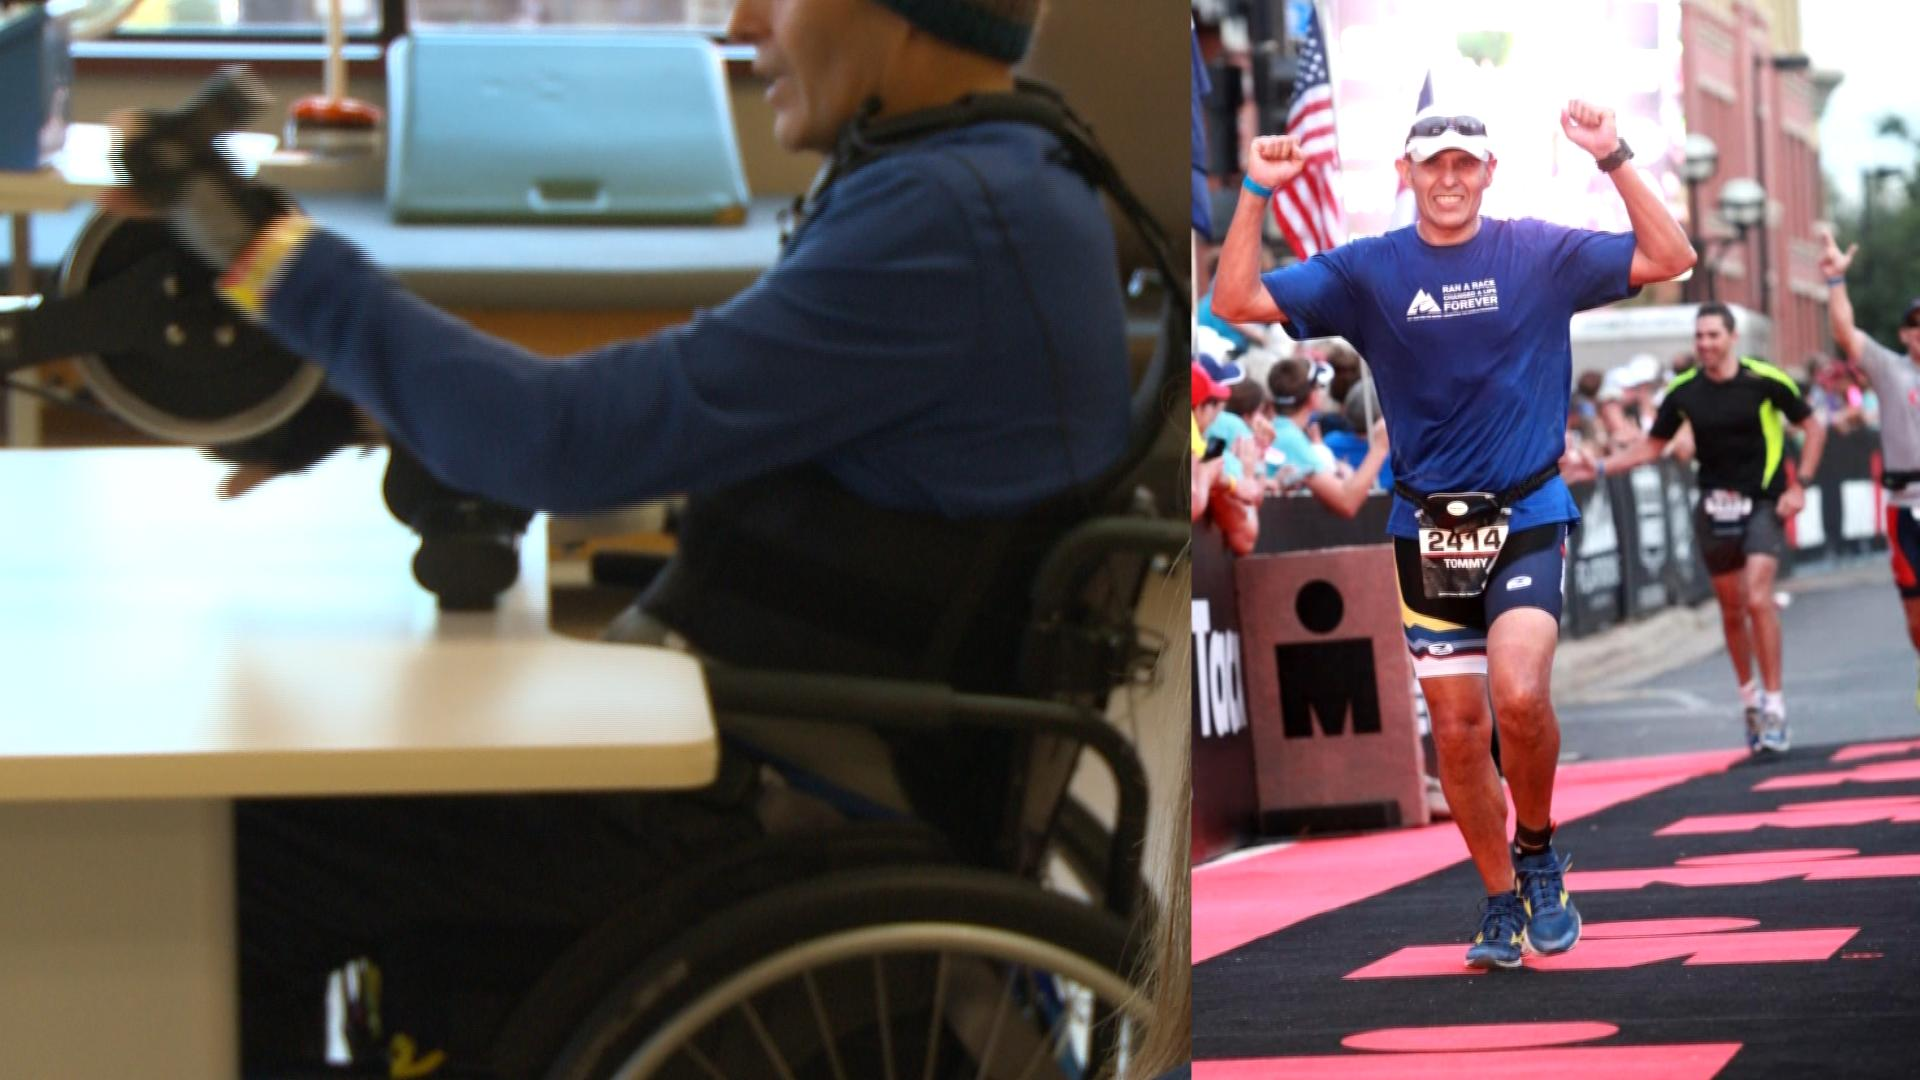 Tommy Levario doing therapy exercises, (Left, KXAN Photo/ Alyssa Goard). Tommy Levario competing at an Ironman triathlon (Right, courtesy Sam Levario).